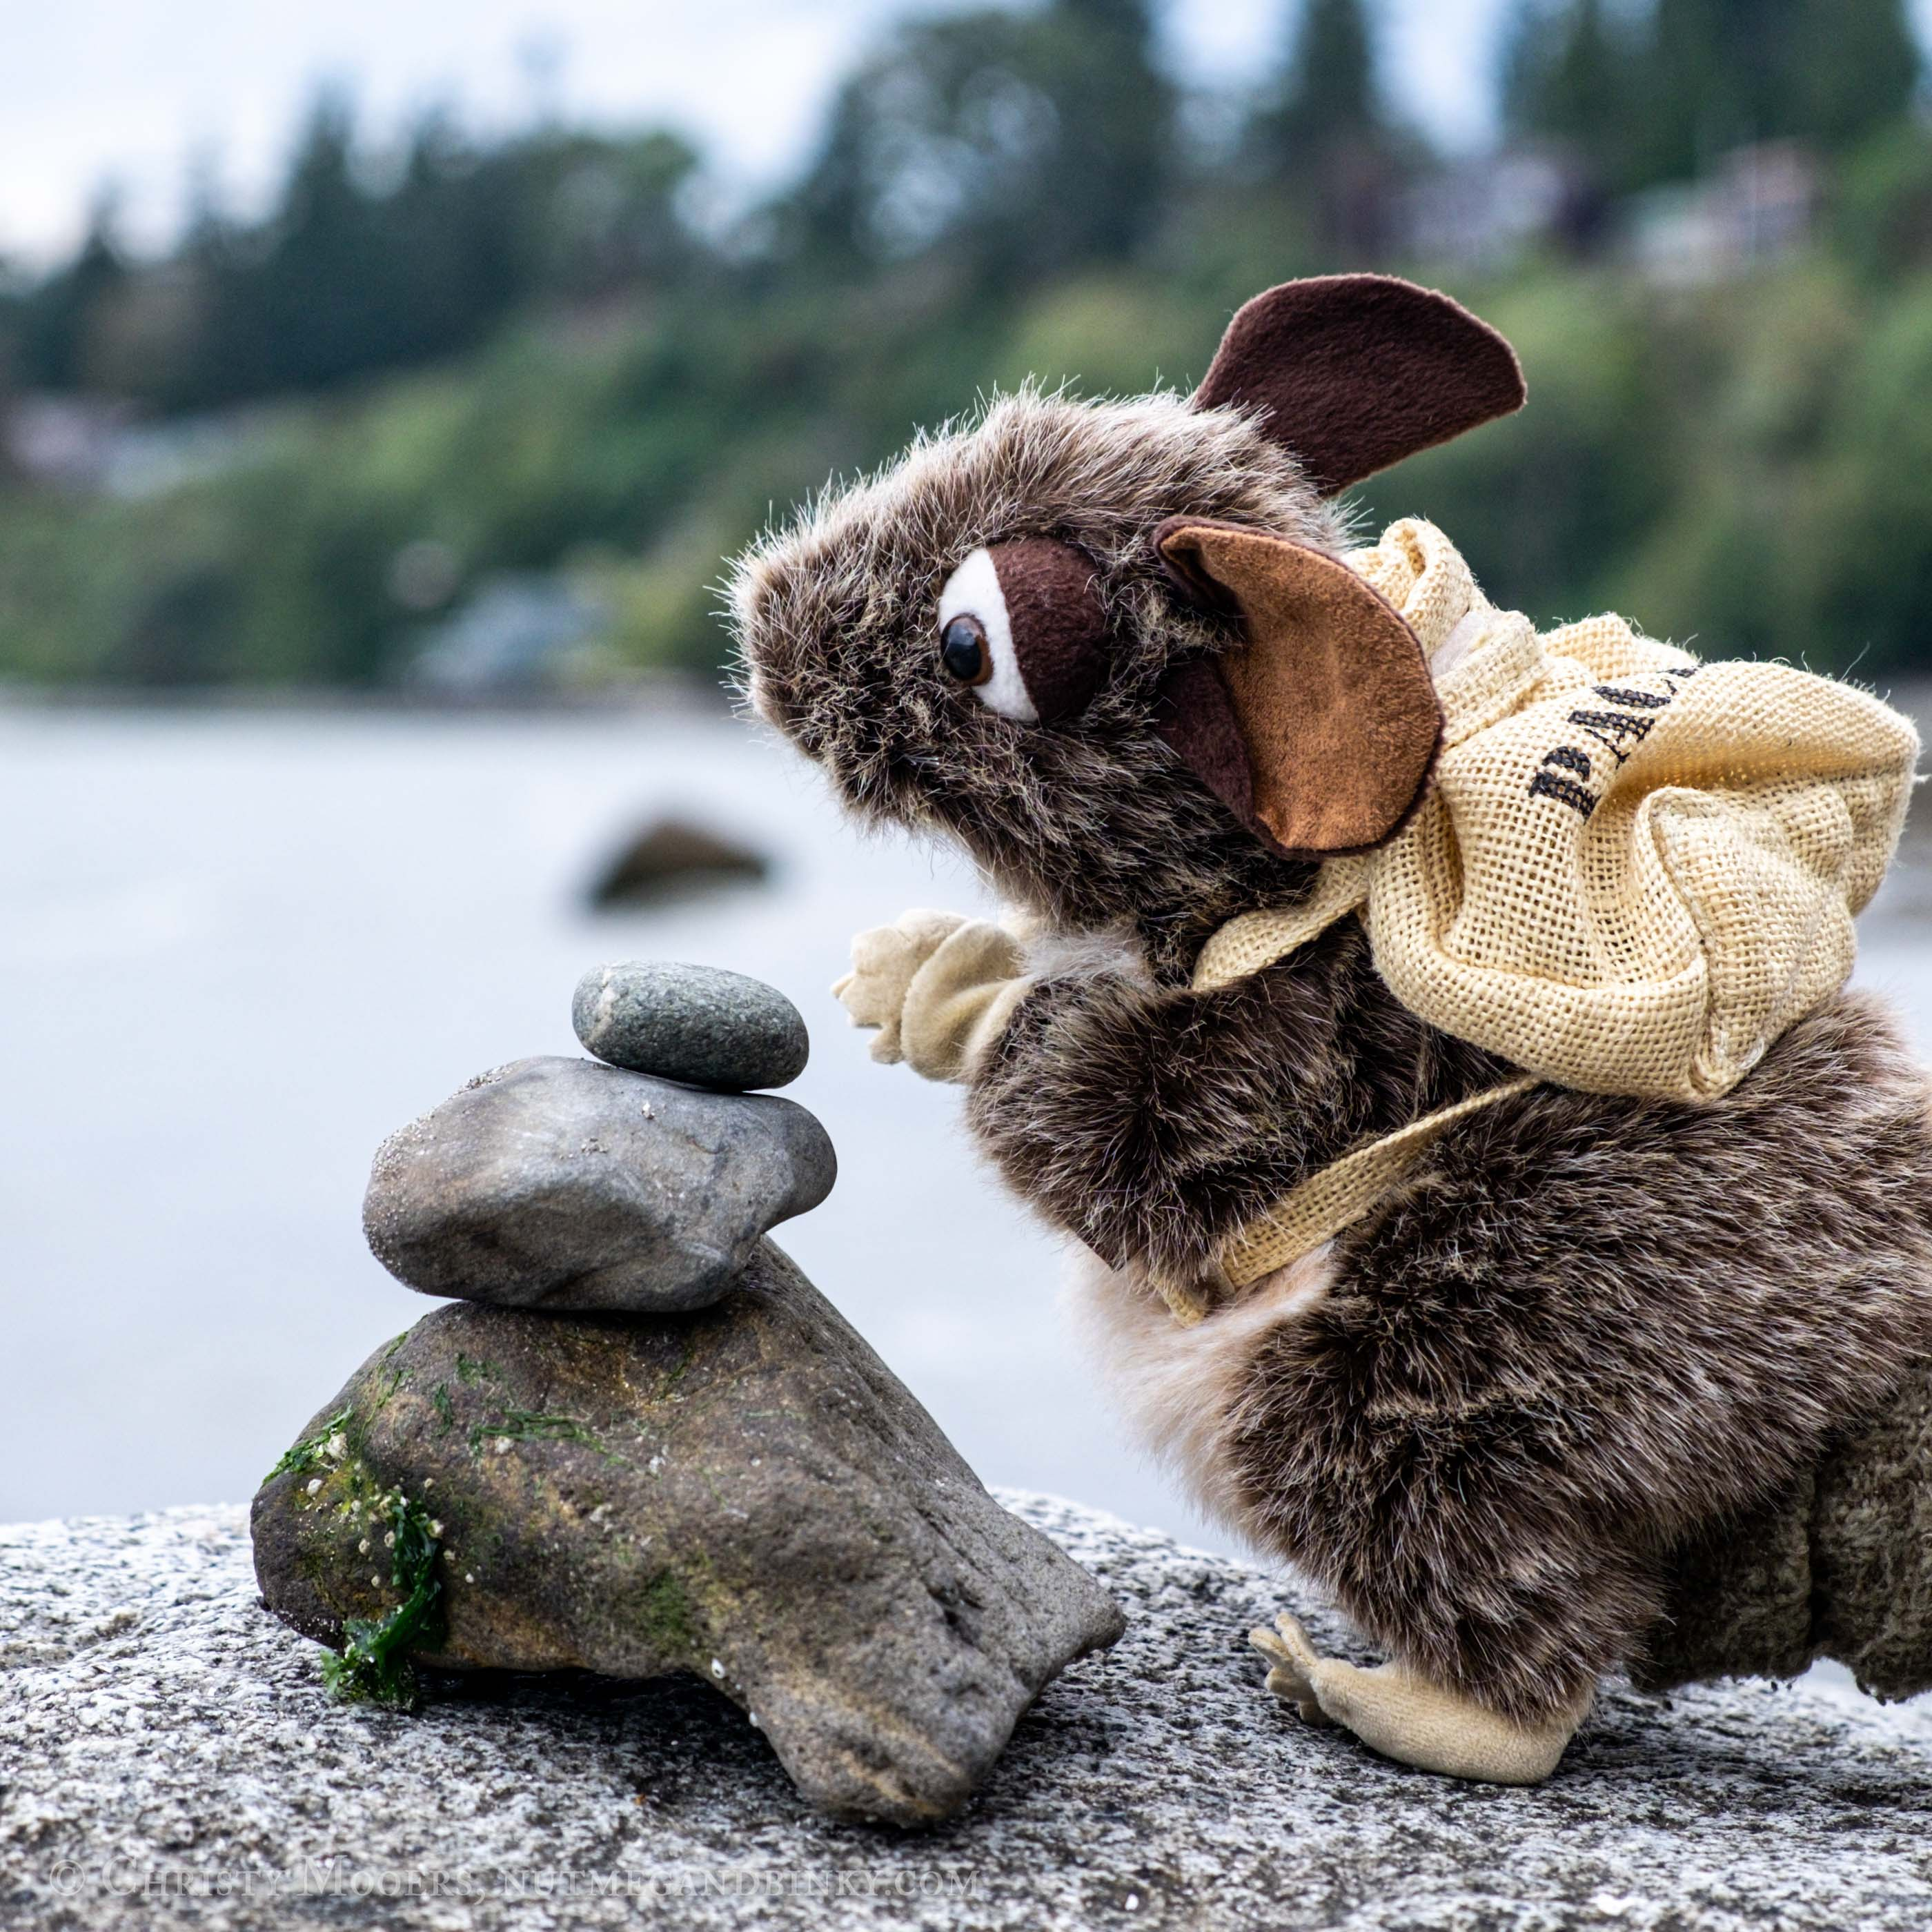 puppet packrat with backpack looking into the distance over a cairn of rocks